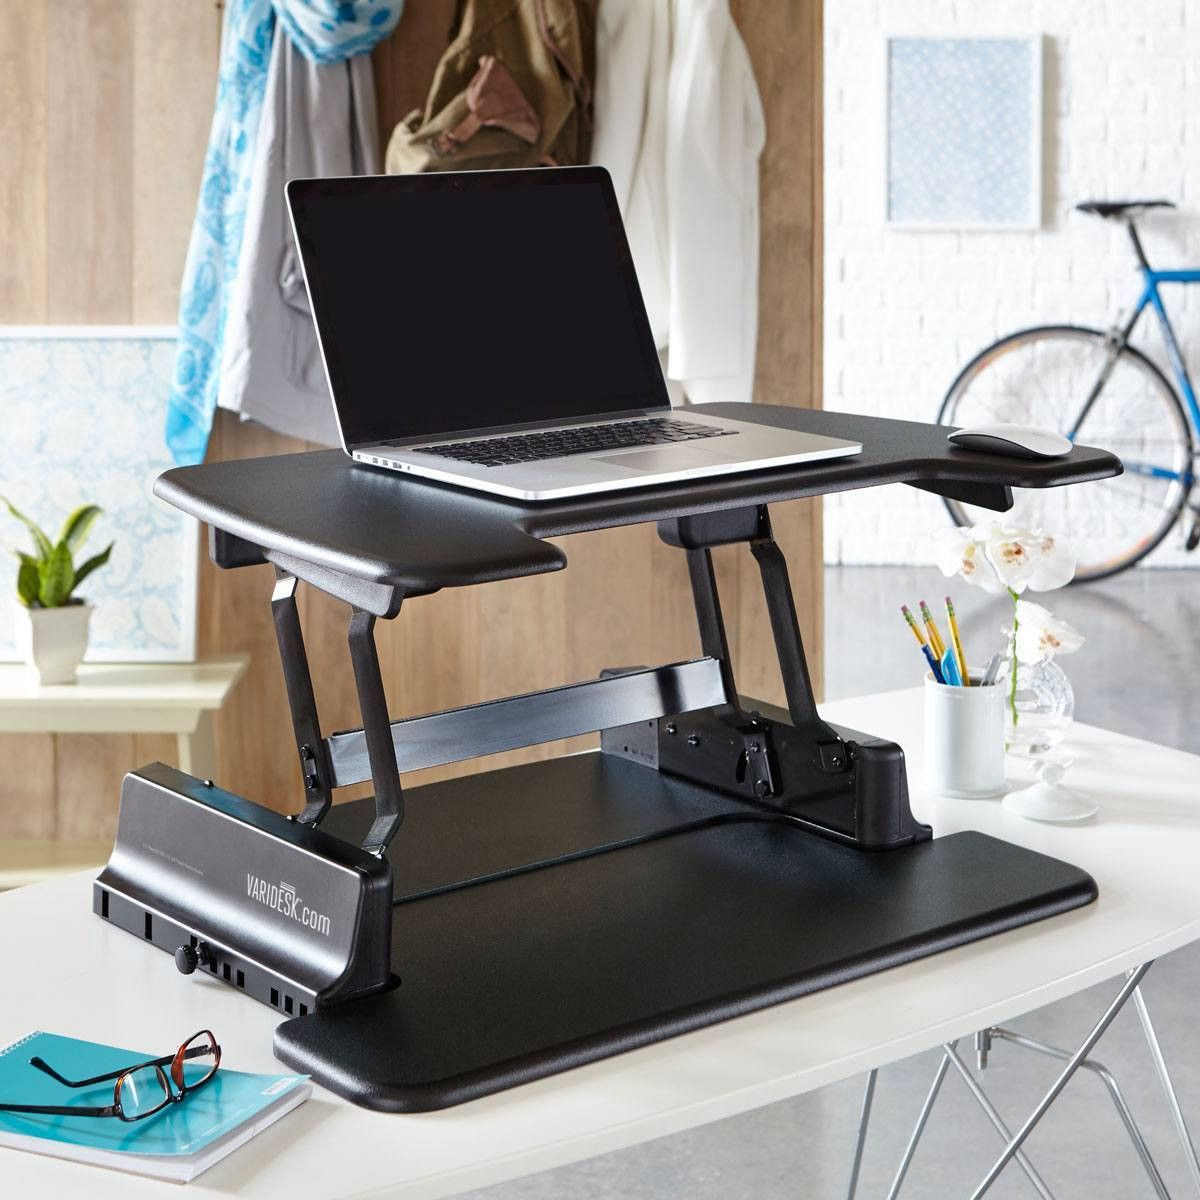 the varidesk laptop 30 gives you two placement options for convenient use of your laptop. Black Bedroom Furniture Sets. Home Design Ideas